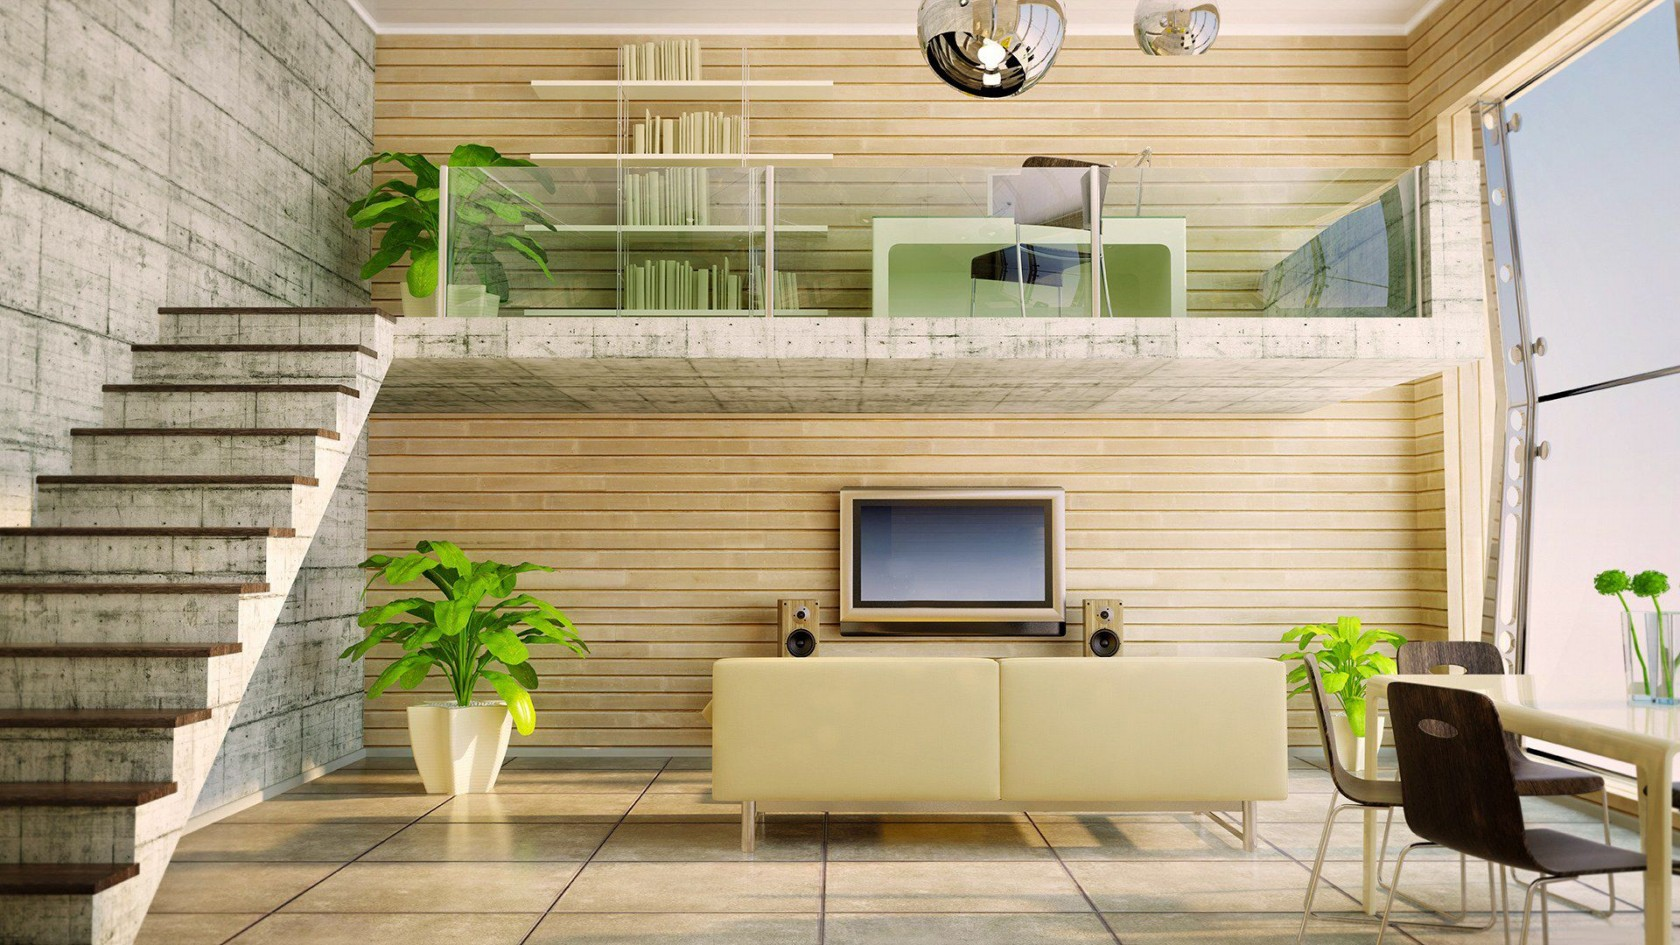 Interior Design HD Wallpapers. 31 Awesome Interior Design Inspiration